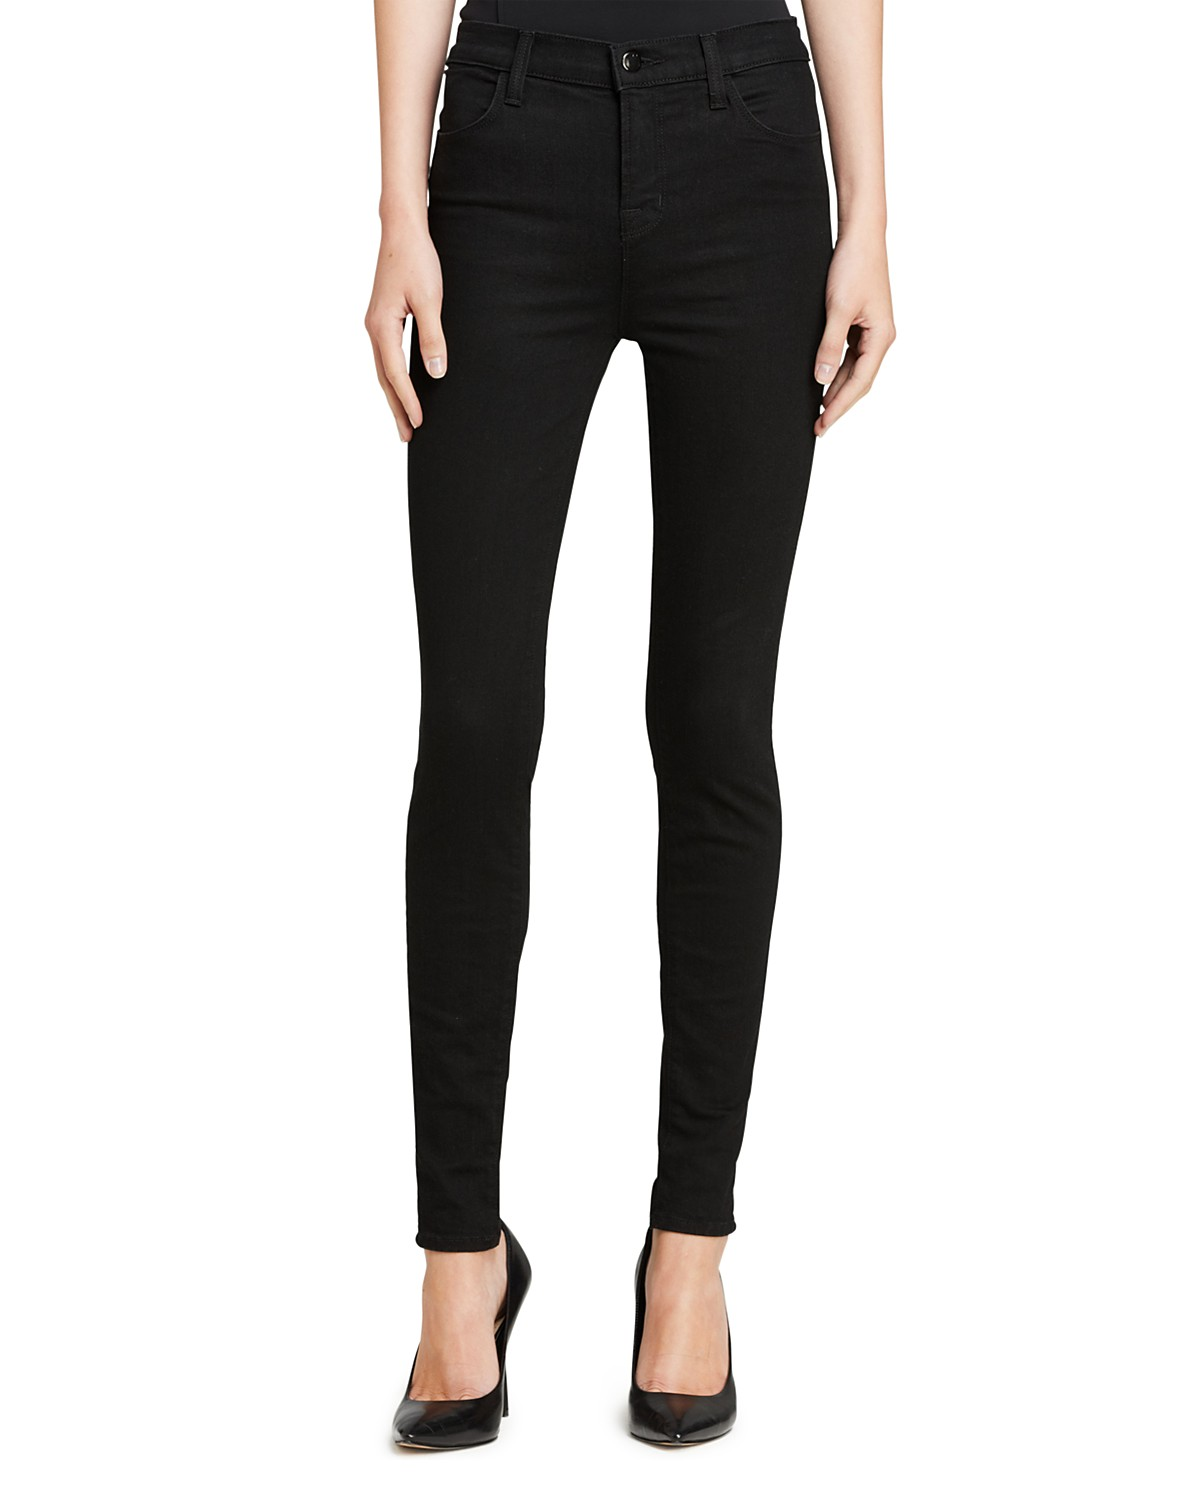 high rise skinny jeans - Black J Brand Buy Cheap For Nice Low Shipping Fee Sale Online Newest Pre Order Sale Cost 22LyhTq